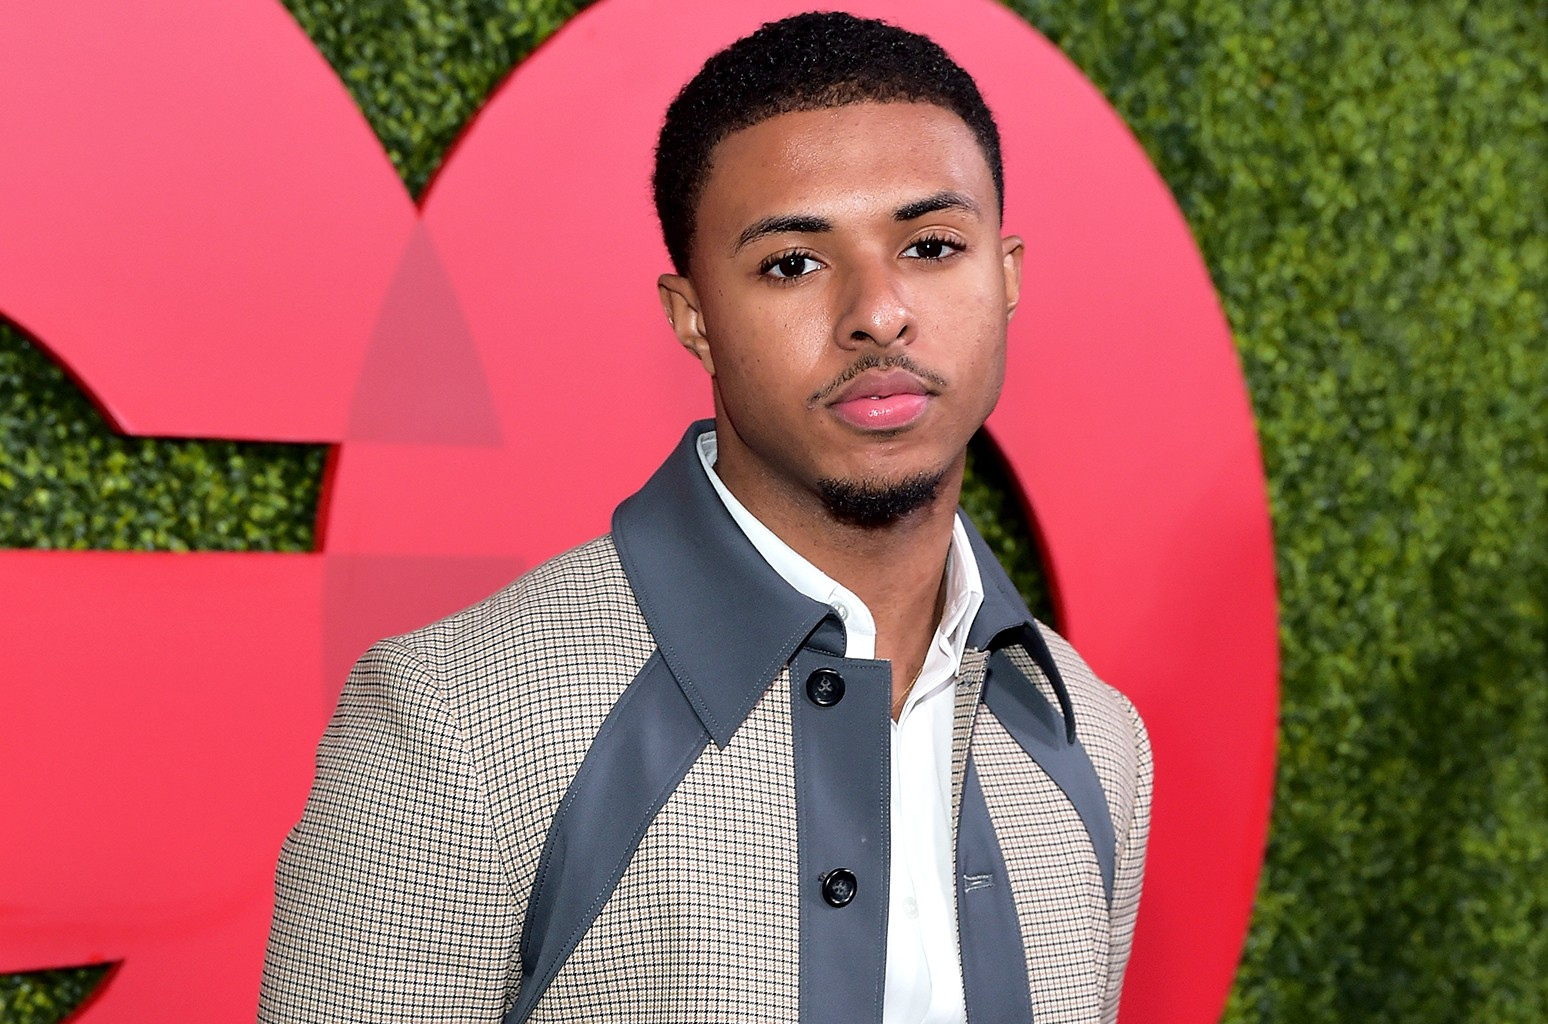 'Grown-ish' Star Diggy Simmons Reveals He's Ready To Find His Soulmate